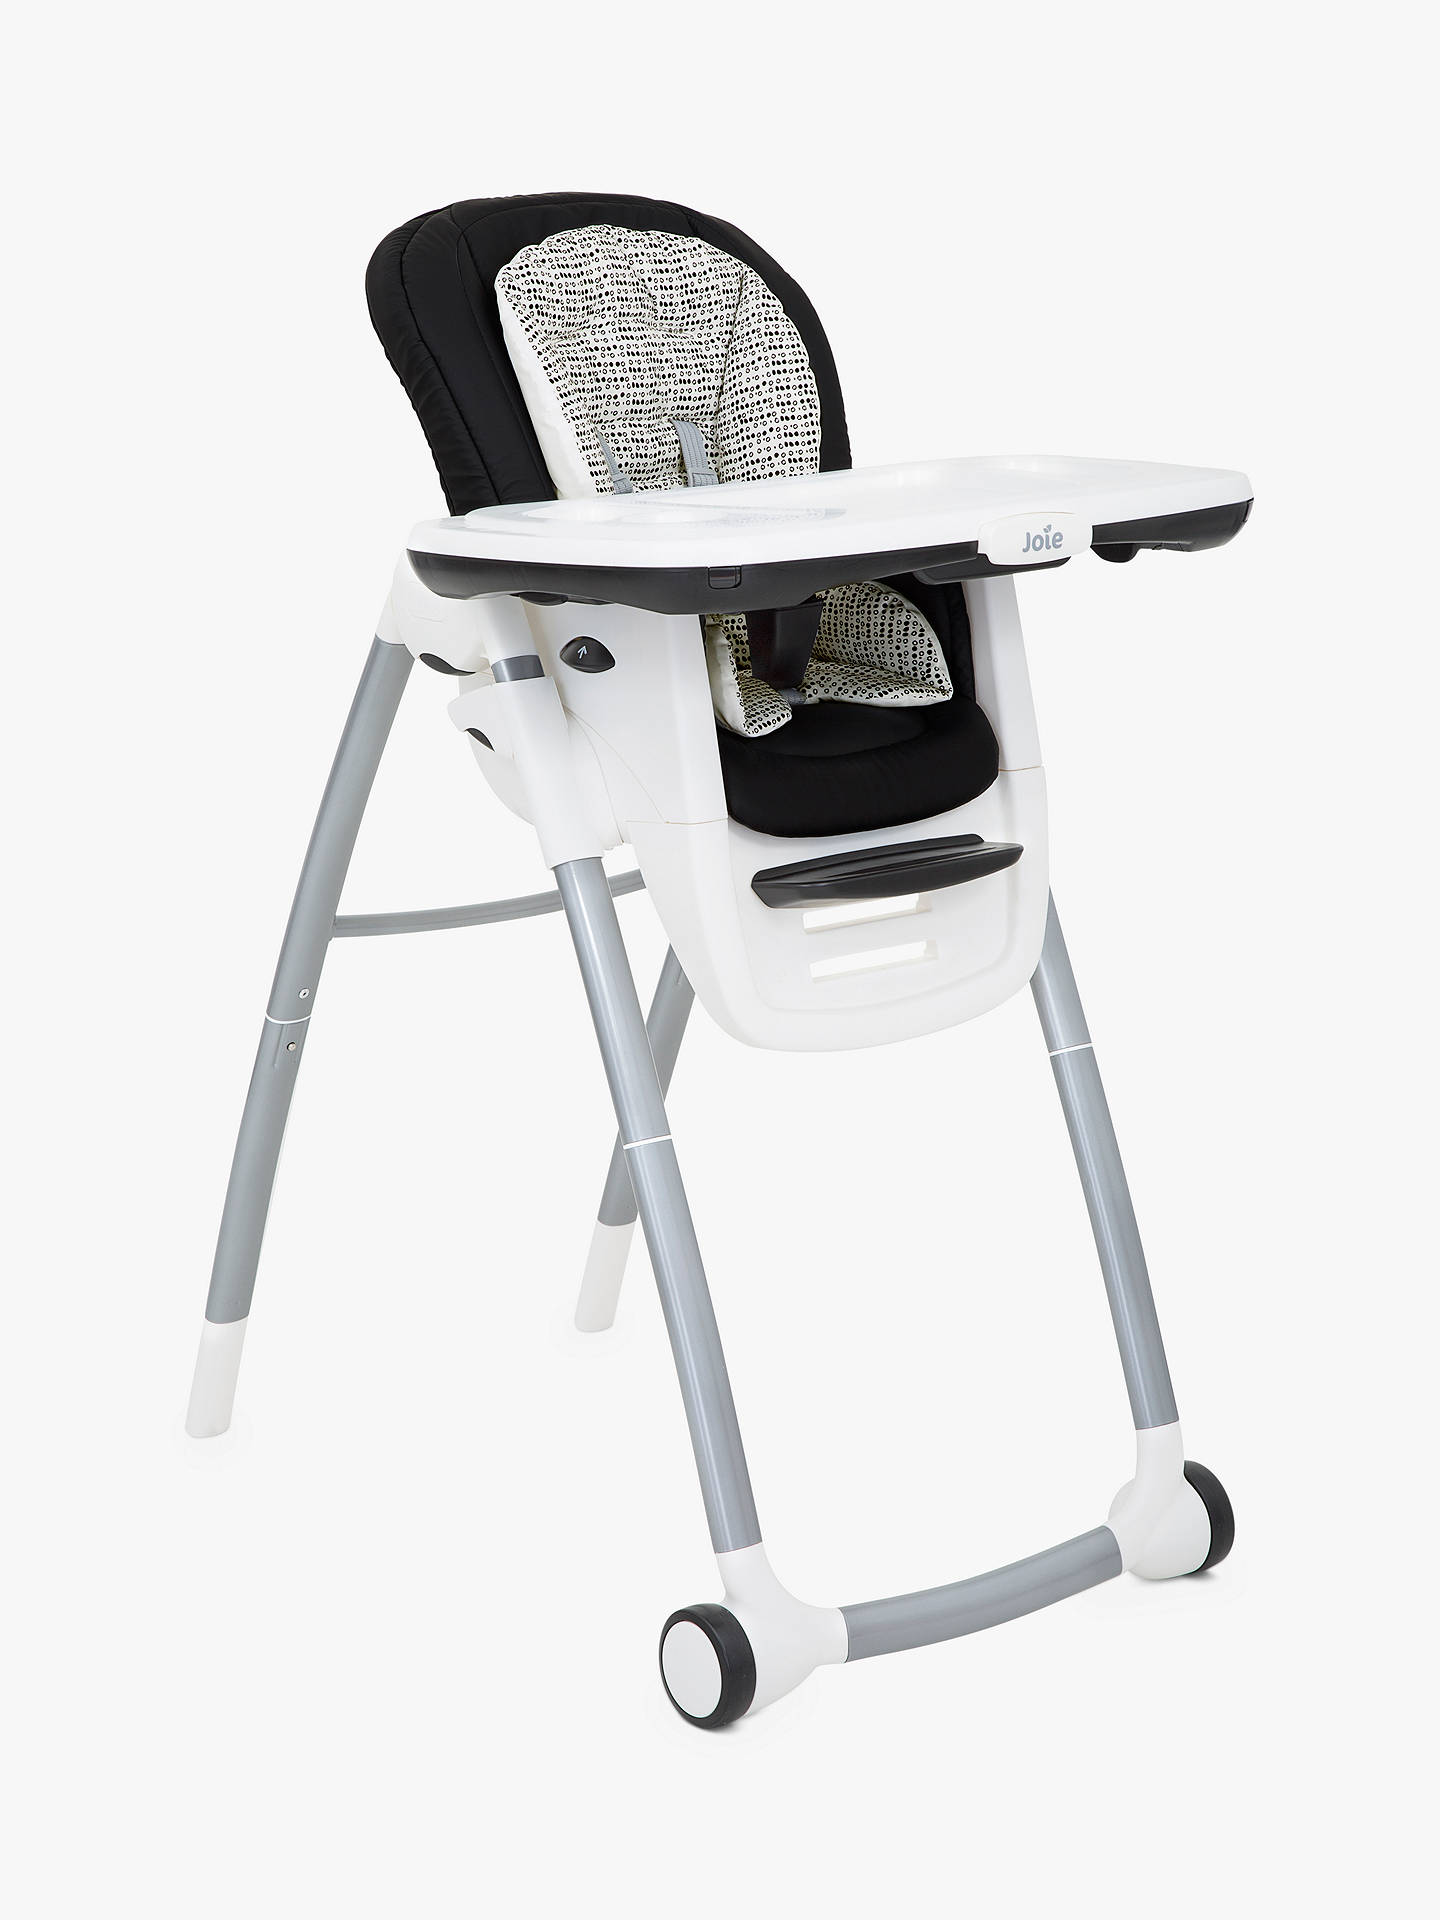 Joie Baby Multiply 6 In 1 Highchair Dots At John Lewis Partners